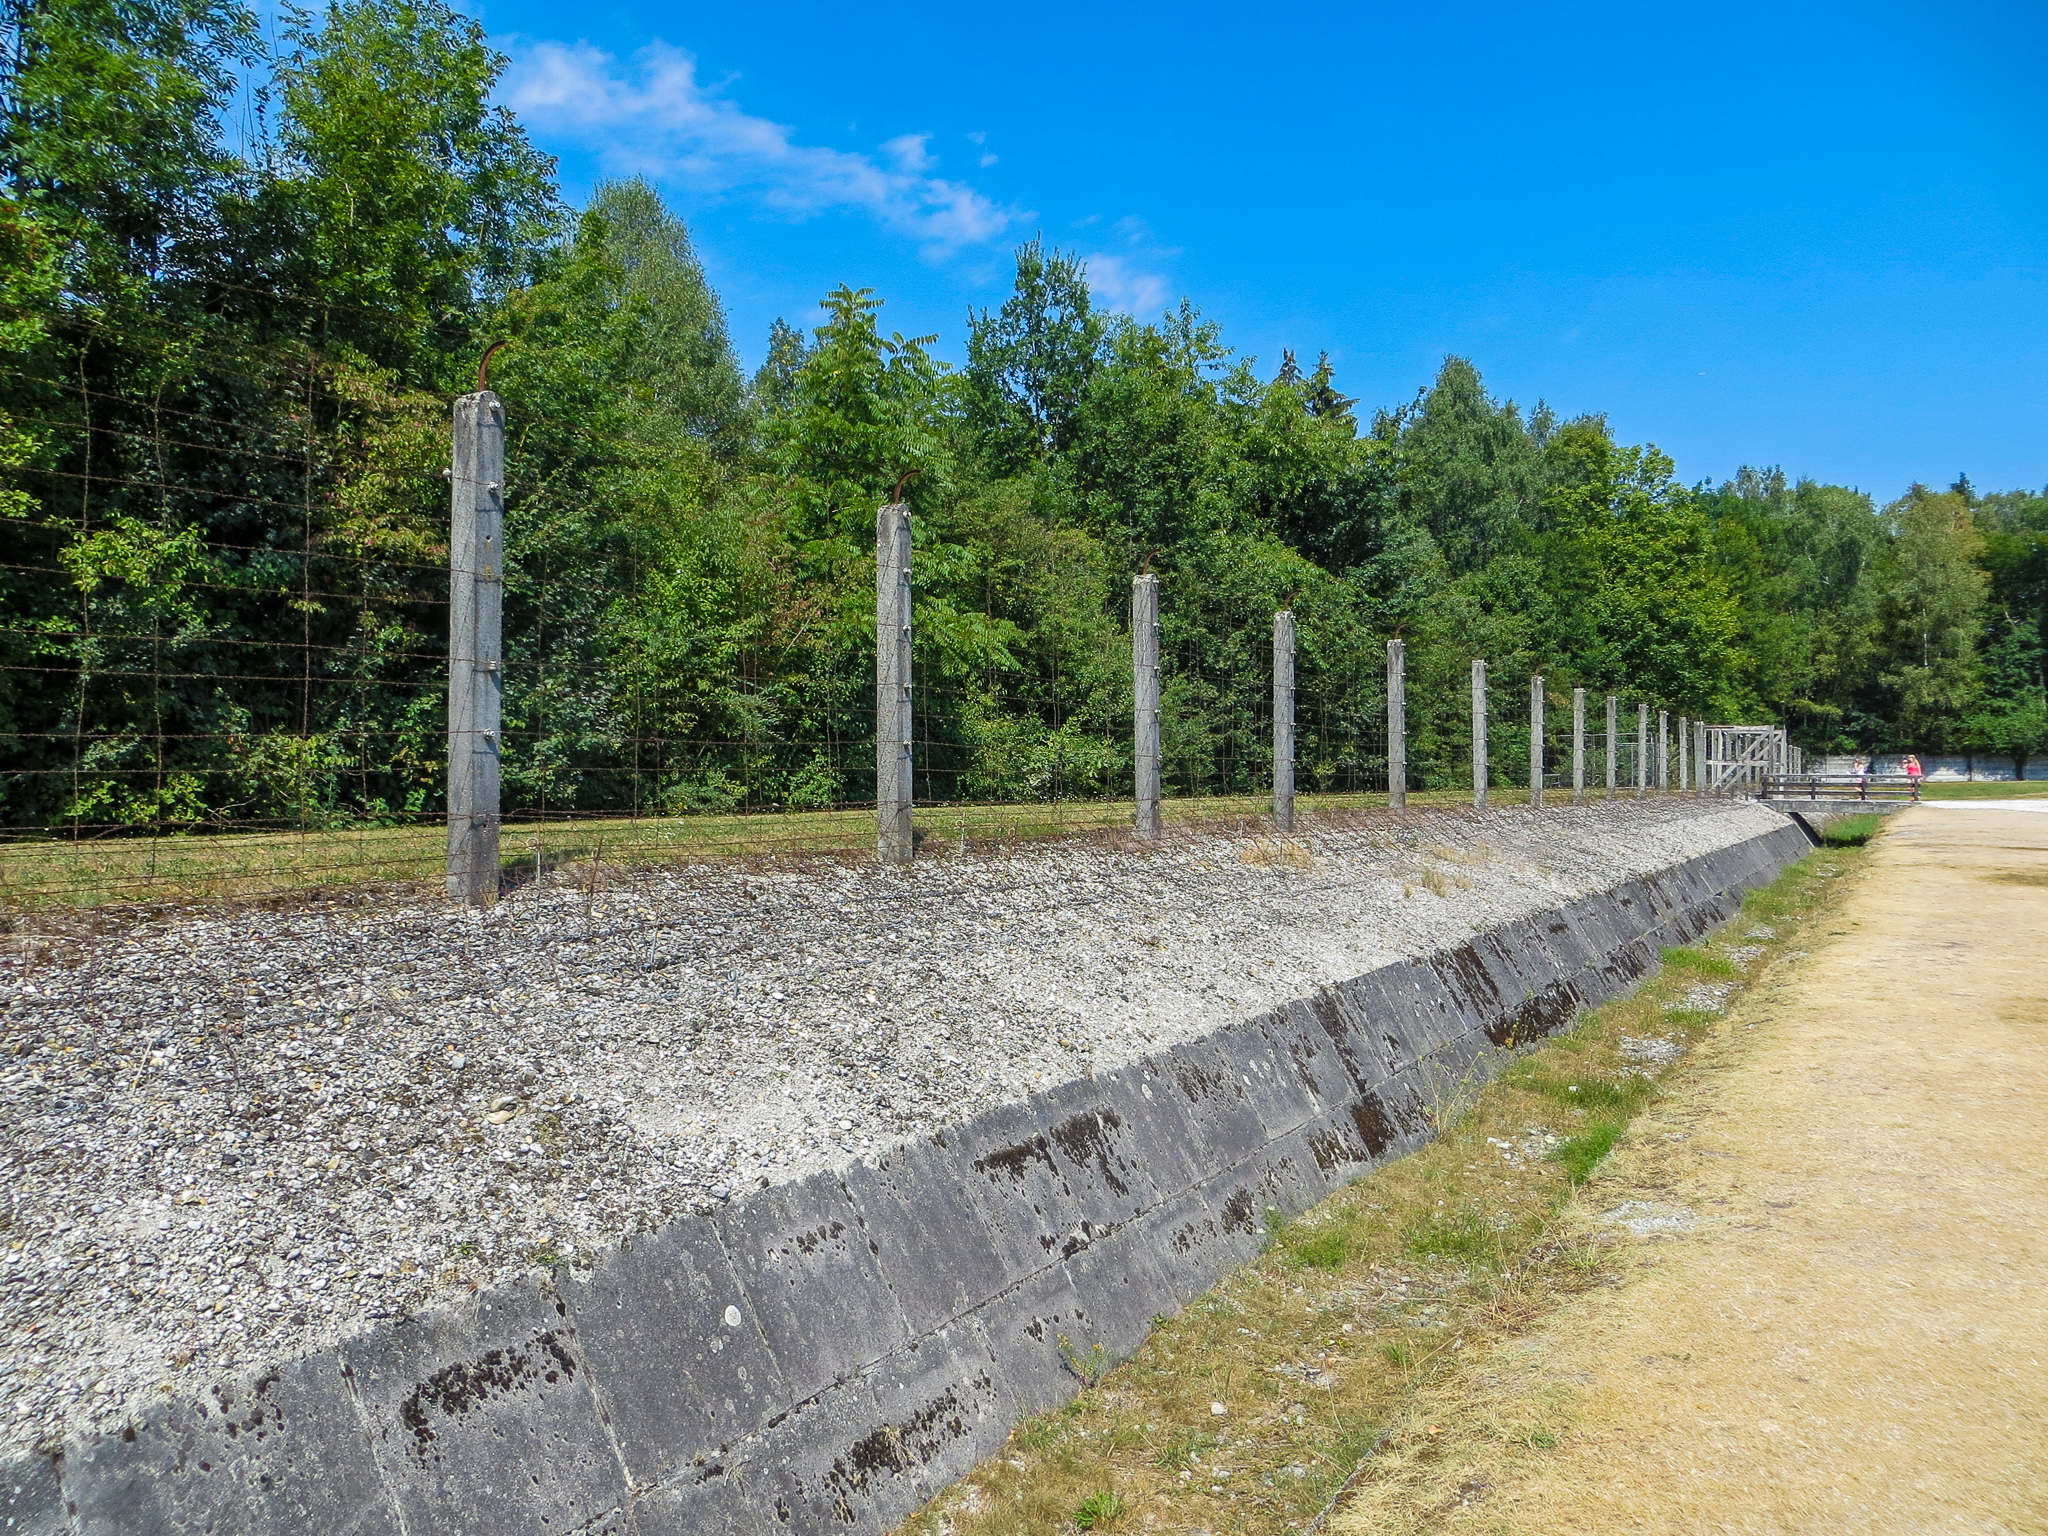 dachau day trip from munich: the barbed wire is disturbing